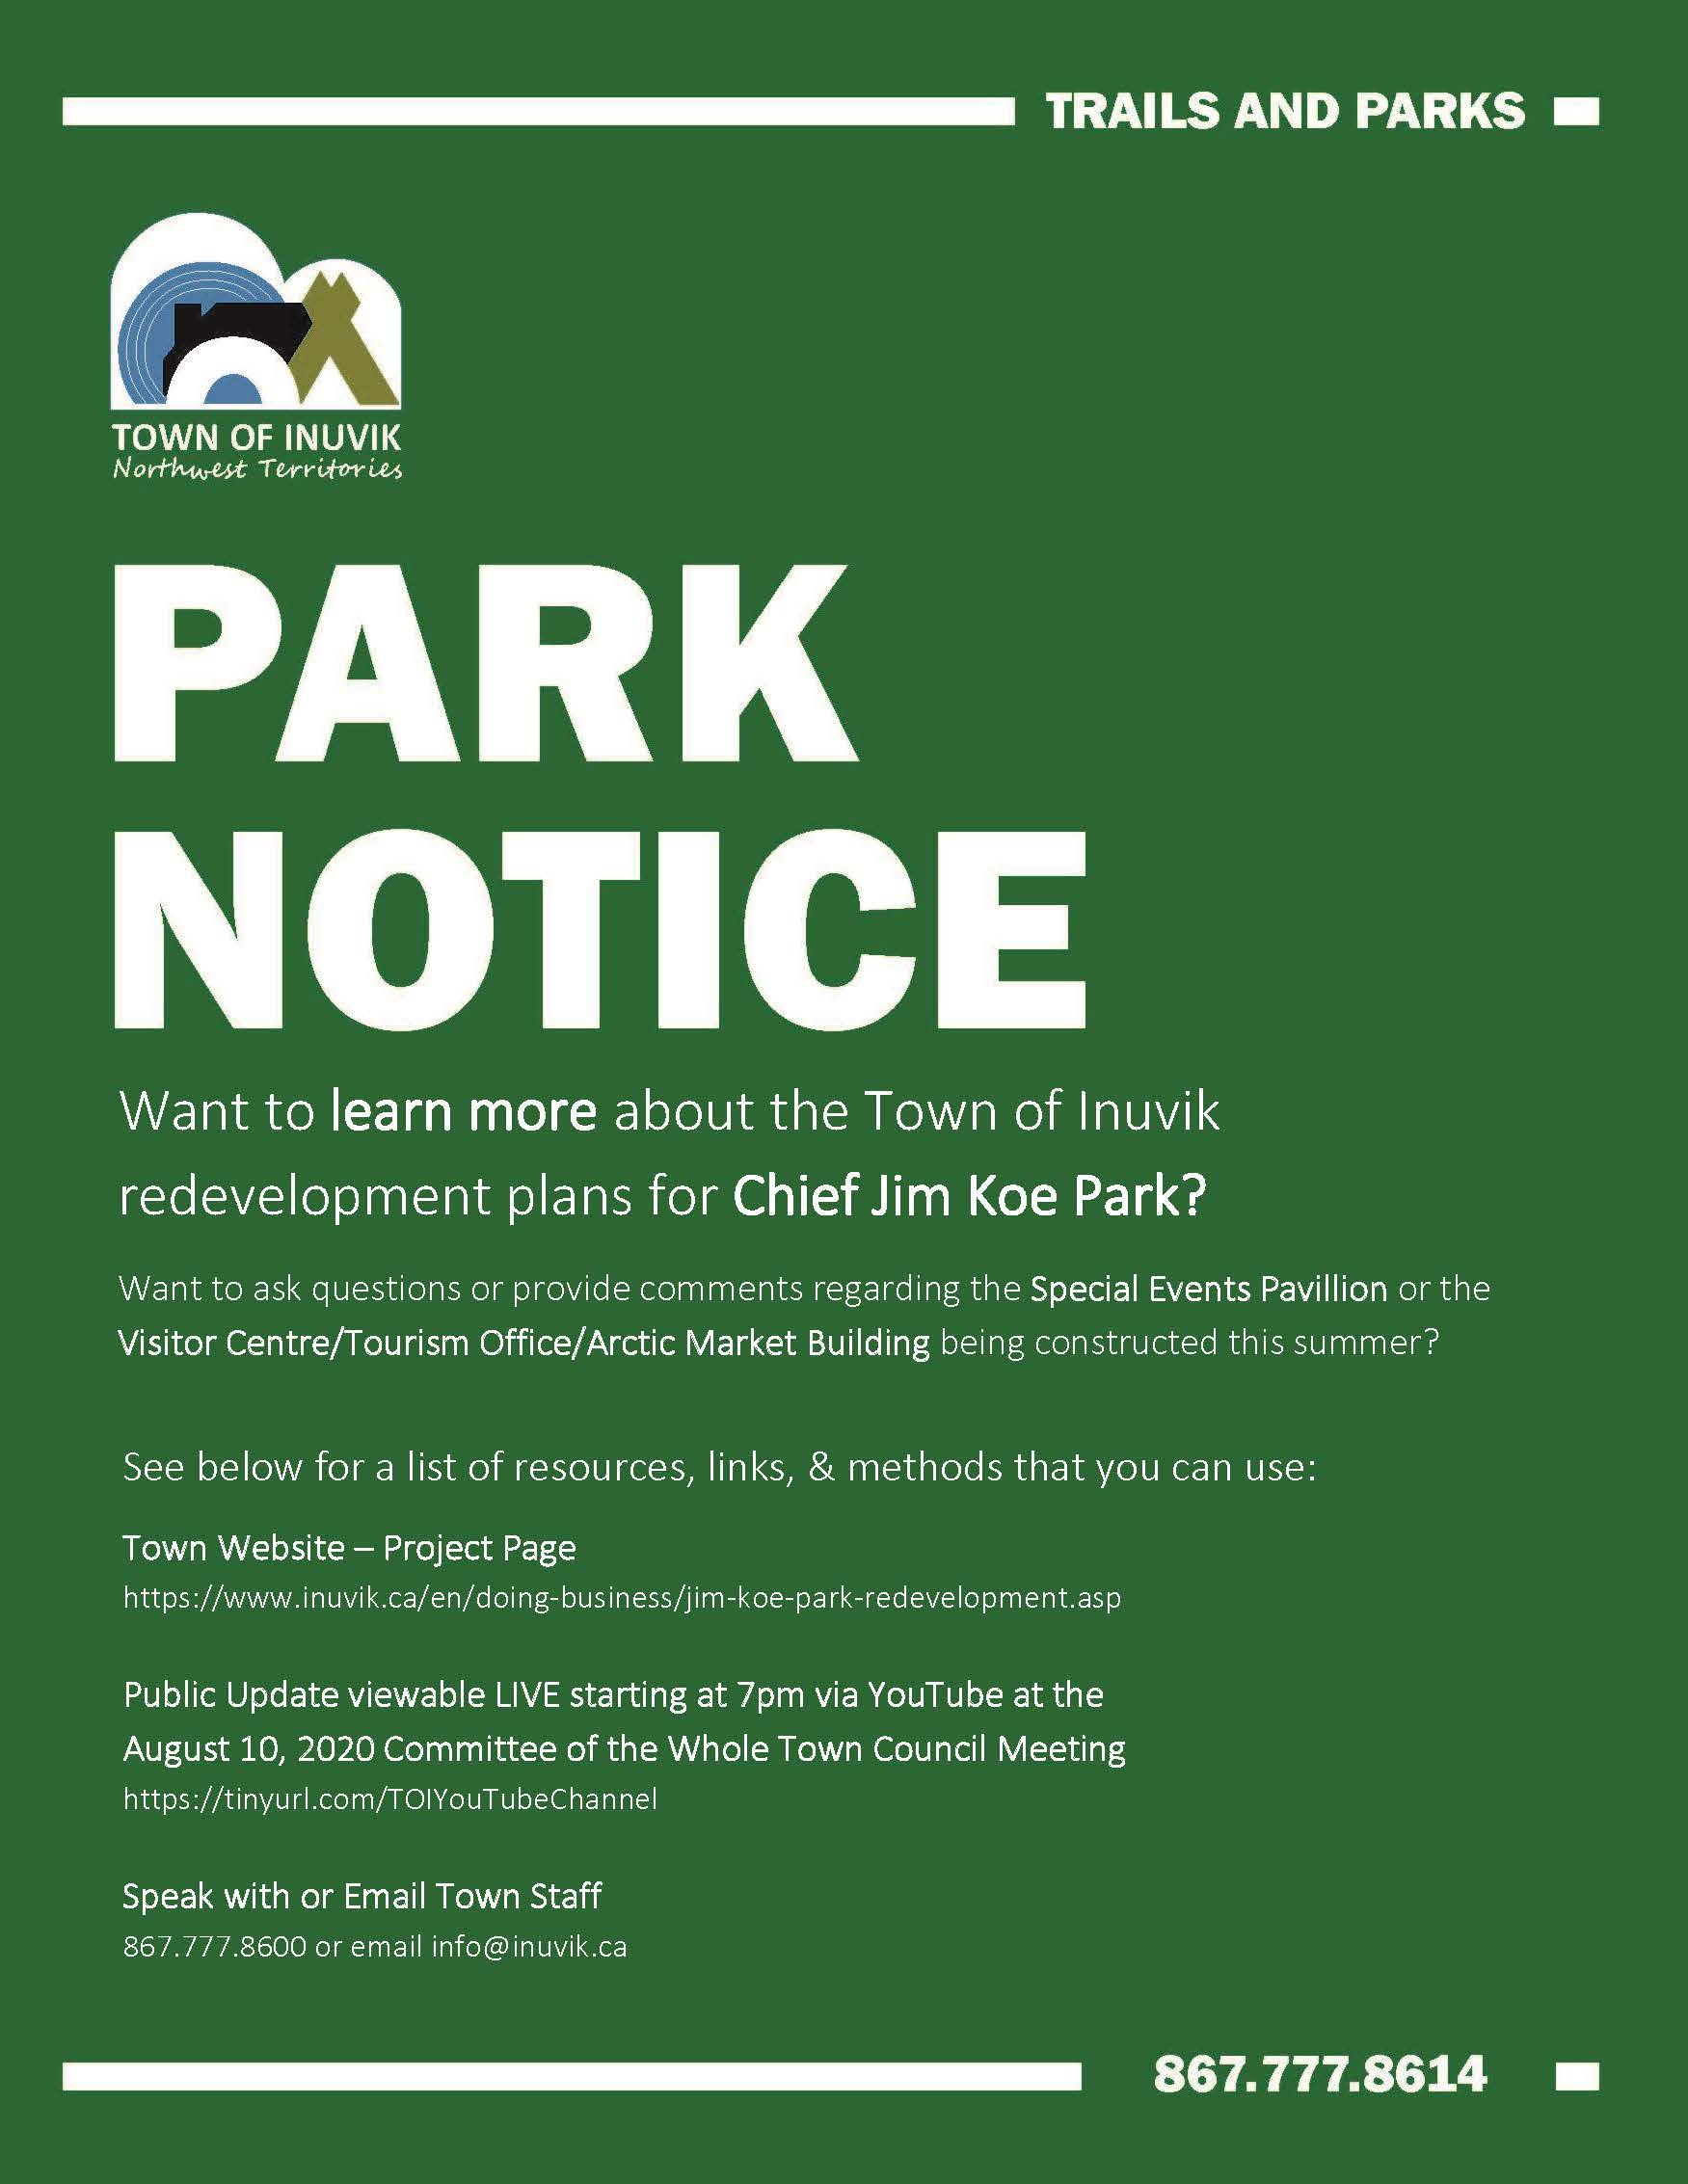 PARKS UPDATE - LEARN MORE - CHIEF JIM KOE PARK - JULY 26 2020